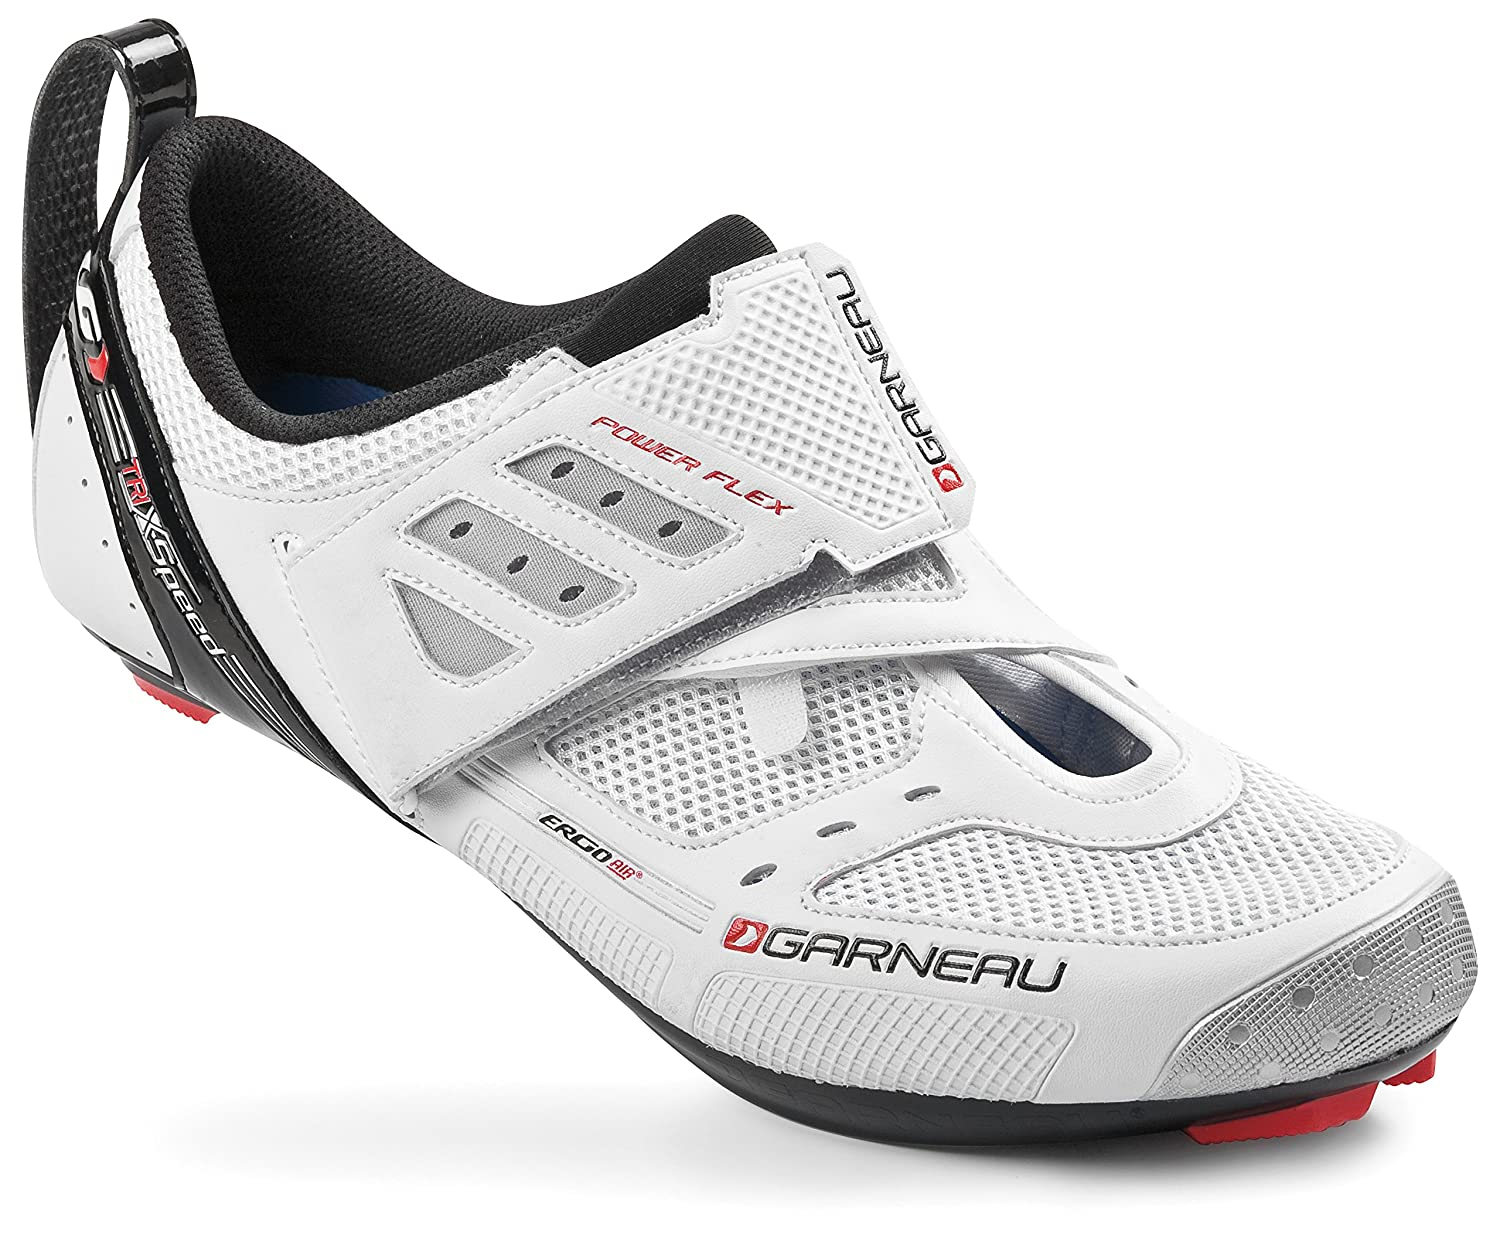 Tri X-Speed II Triathlon - Zapatillas de ciclismo, color blanco, talla 45: Amazon.es: Deportes y aire libre